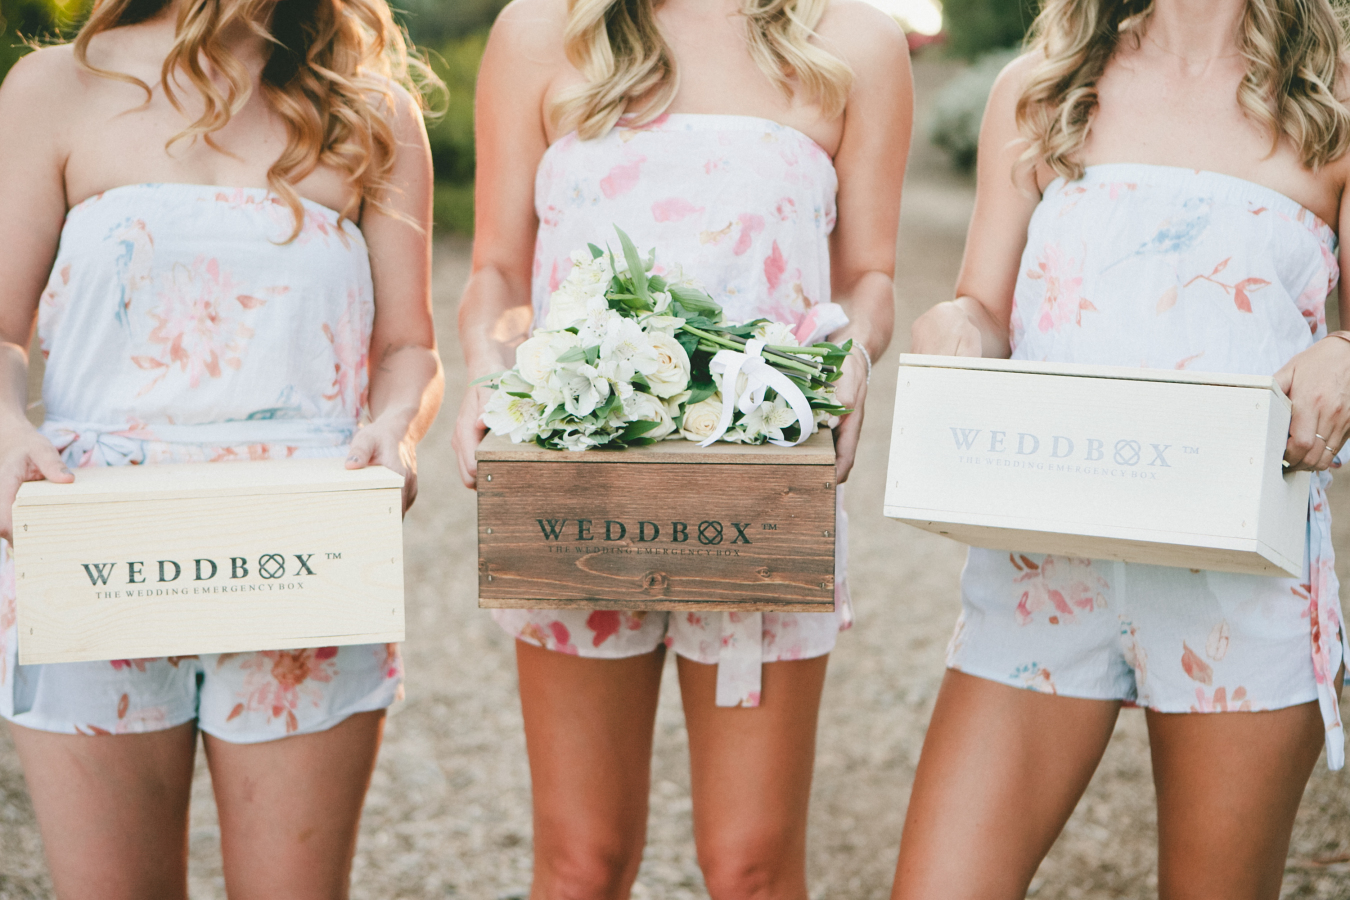 what-to-put-in-your-bridal-emergency-kit http://itgirlweddings.com/what-to-put-in-your-bridal-emergency-kit/